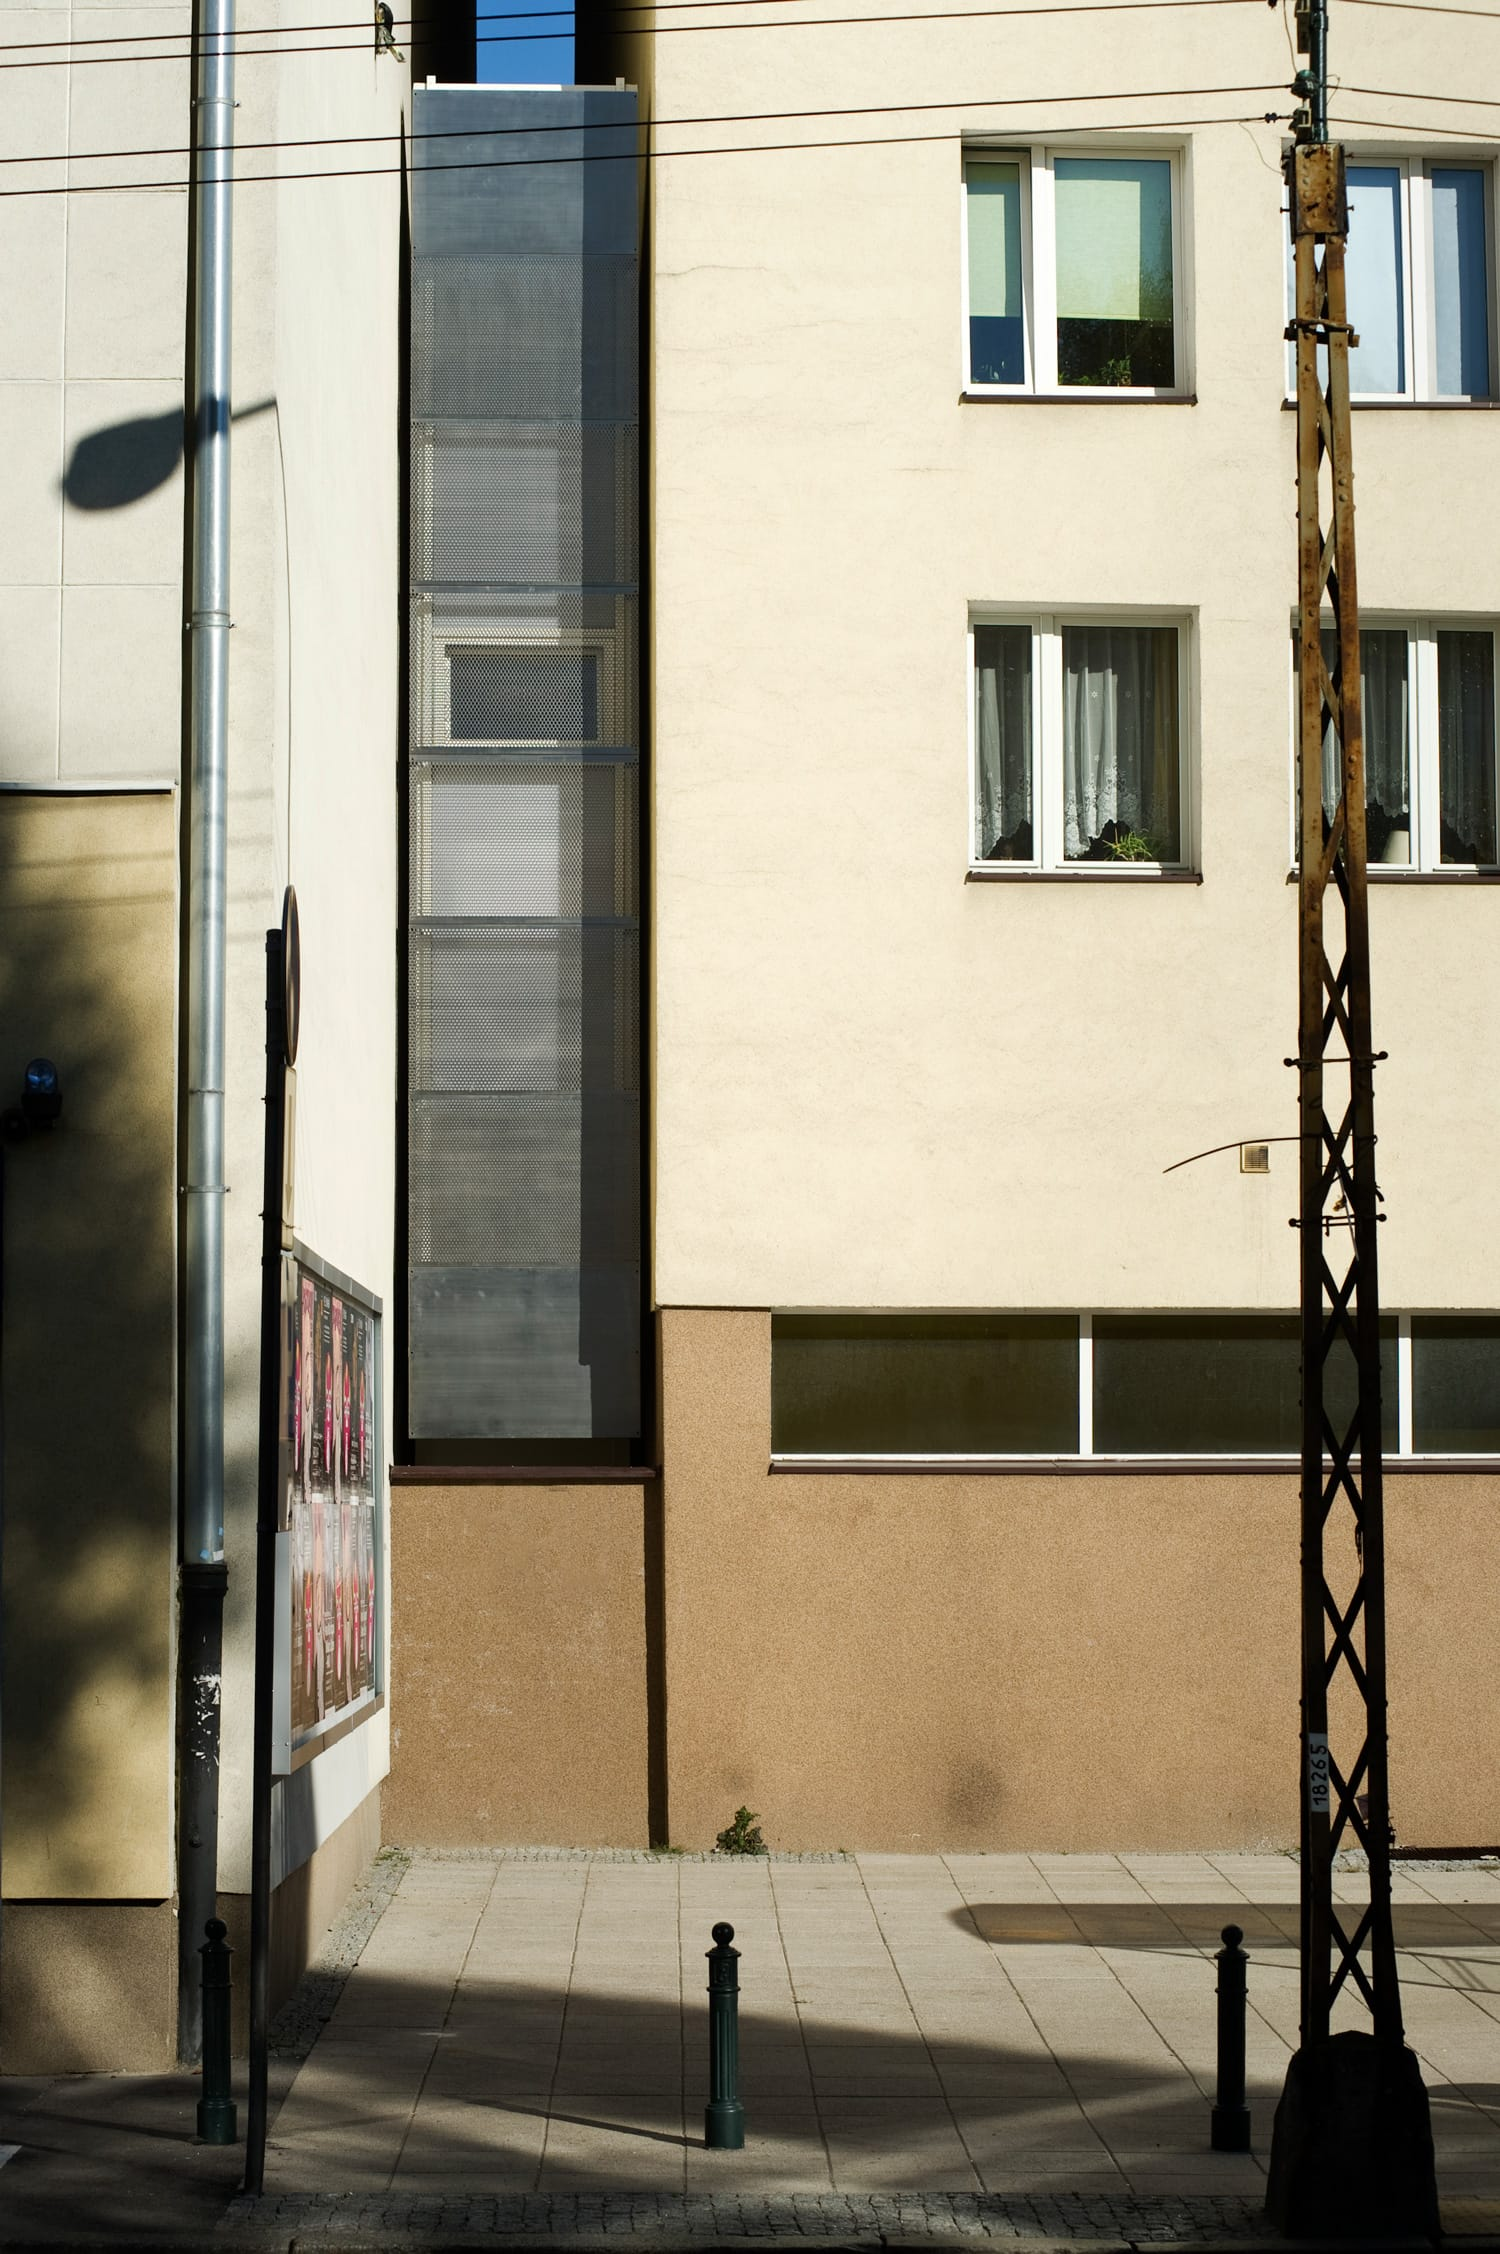 Keret-House-exterior-street-side_Photo_by_Bartek_Warzecha_2